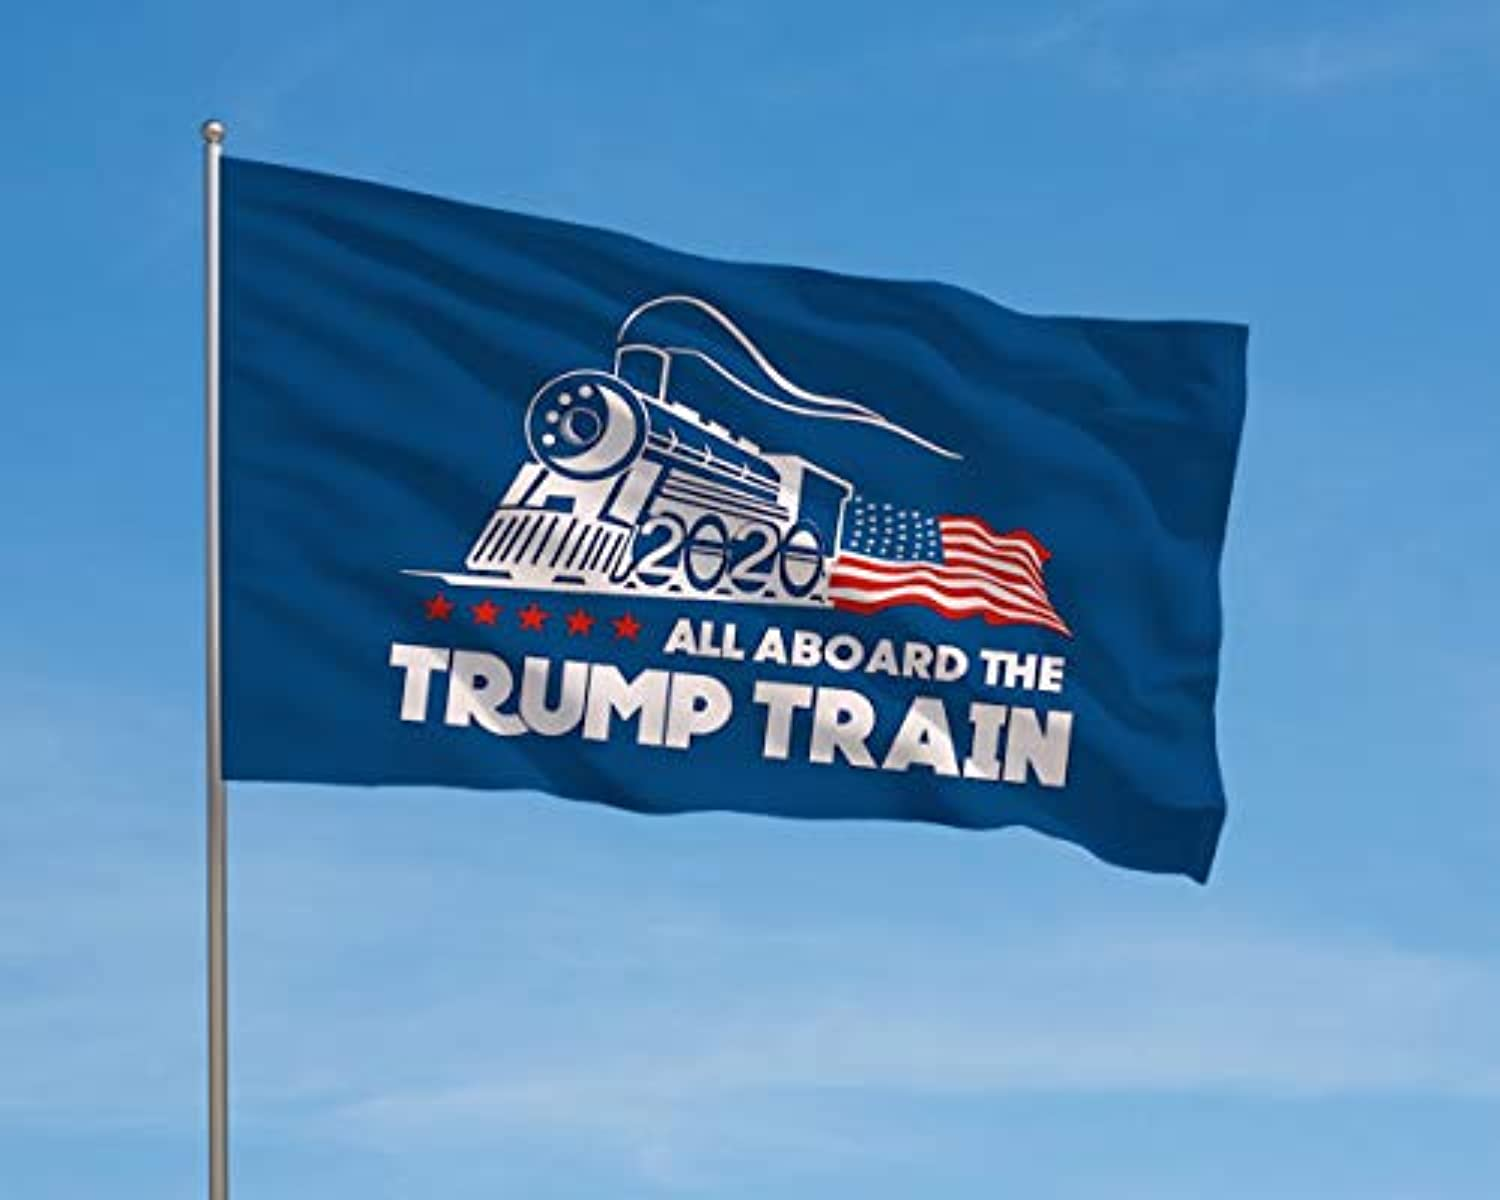 Trump Flag Train Donald Trump Flags Support for President 2020 Banner - All Aboard The Trump Train 3 x 5 feet with Two Brass Grommets